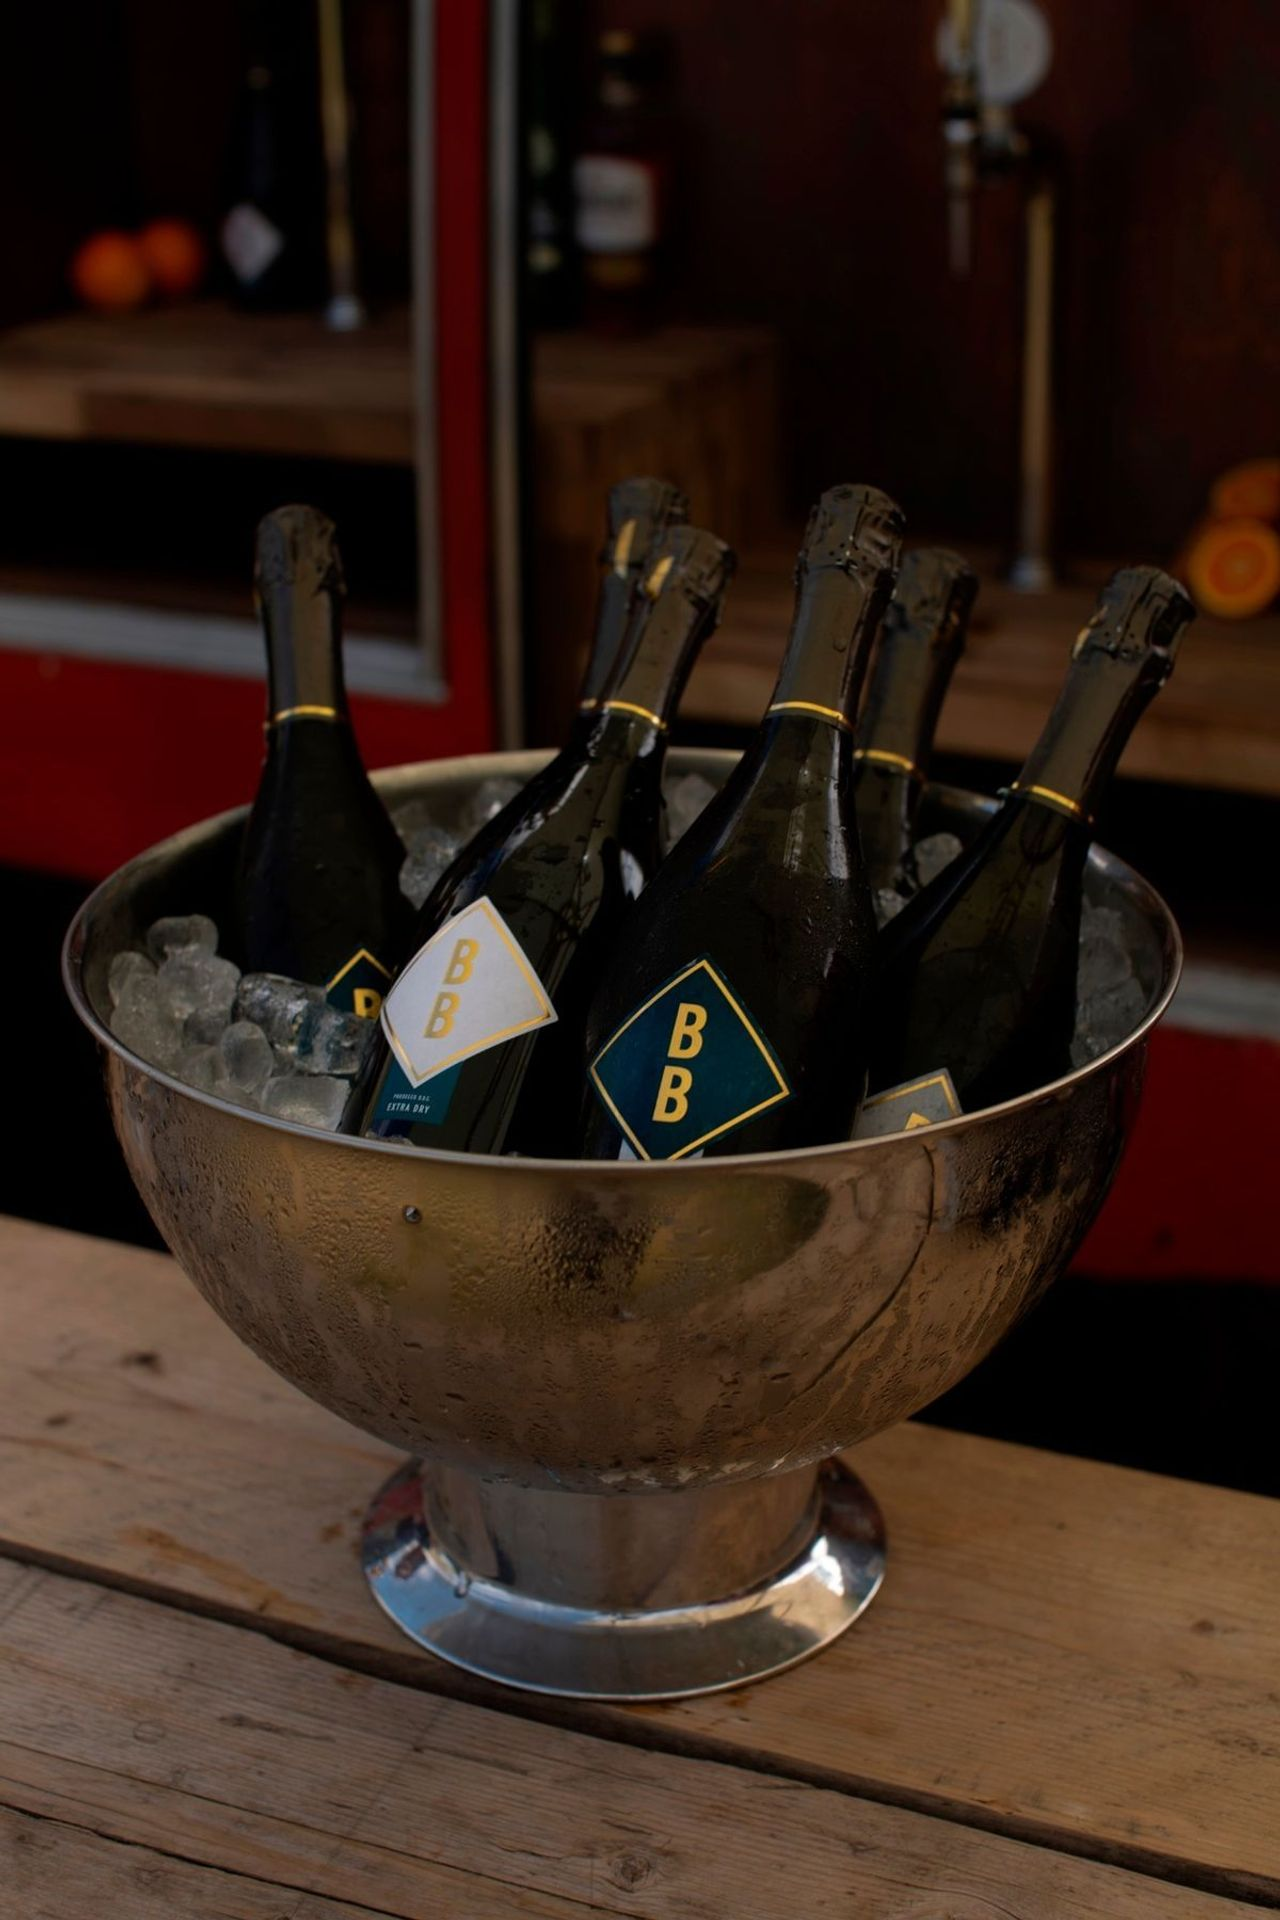 Double Bubble - One Bottle of Brut. One Bottle of Extra Dry Prosecco, Bubble Bros Ltd